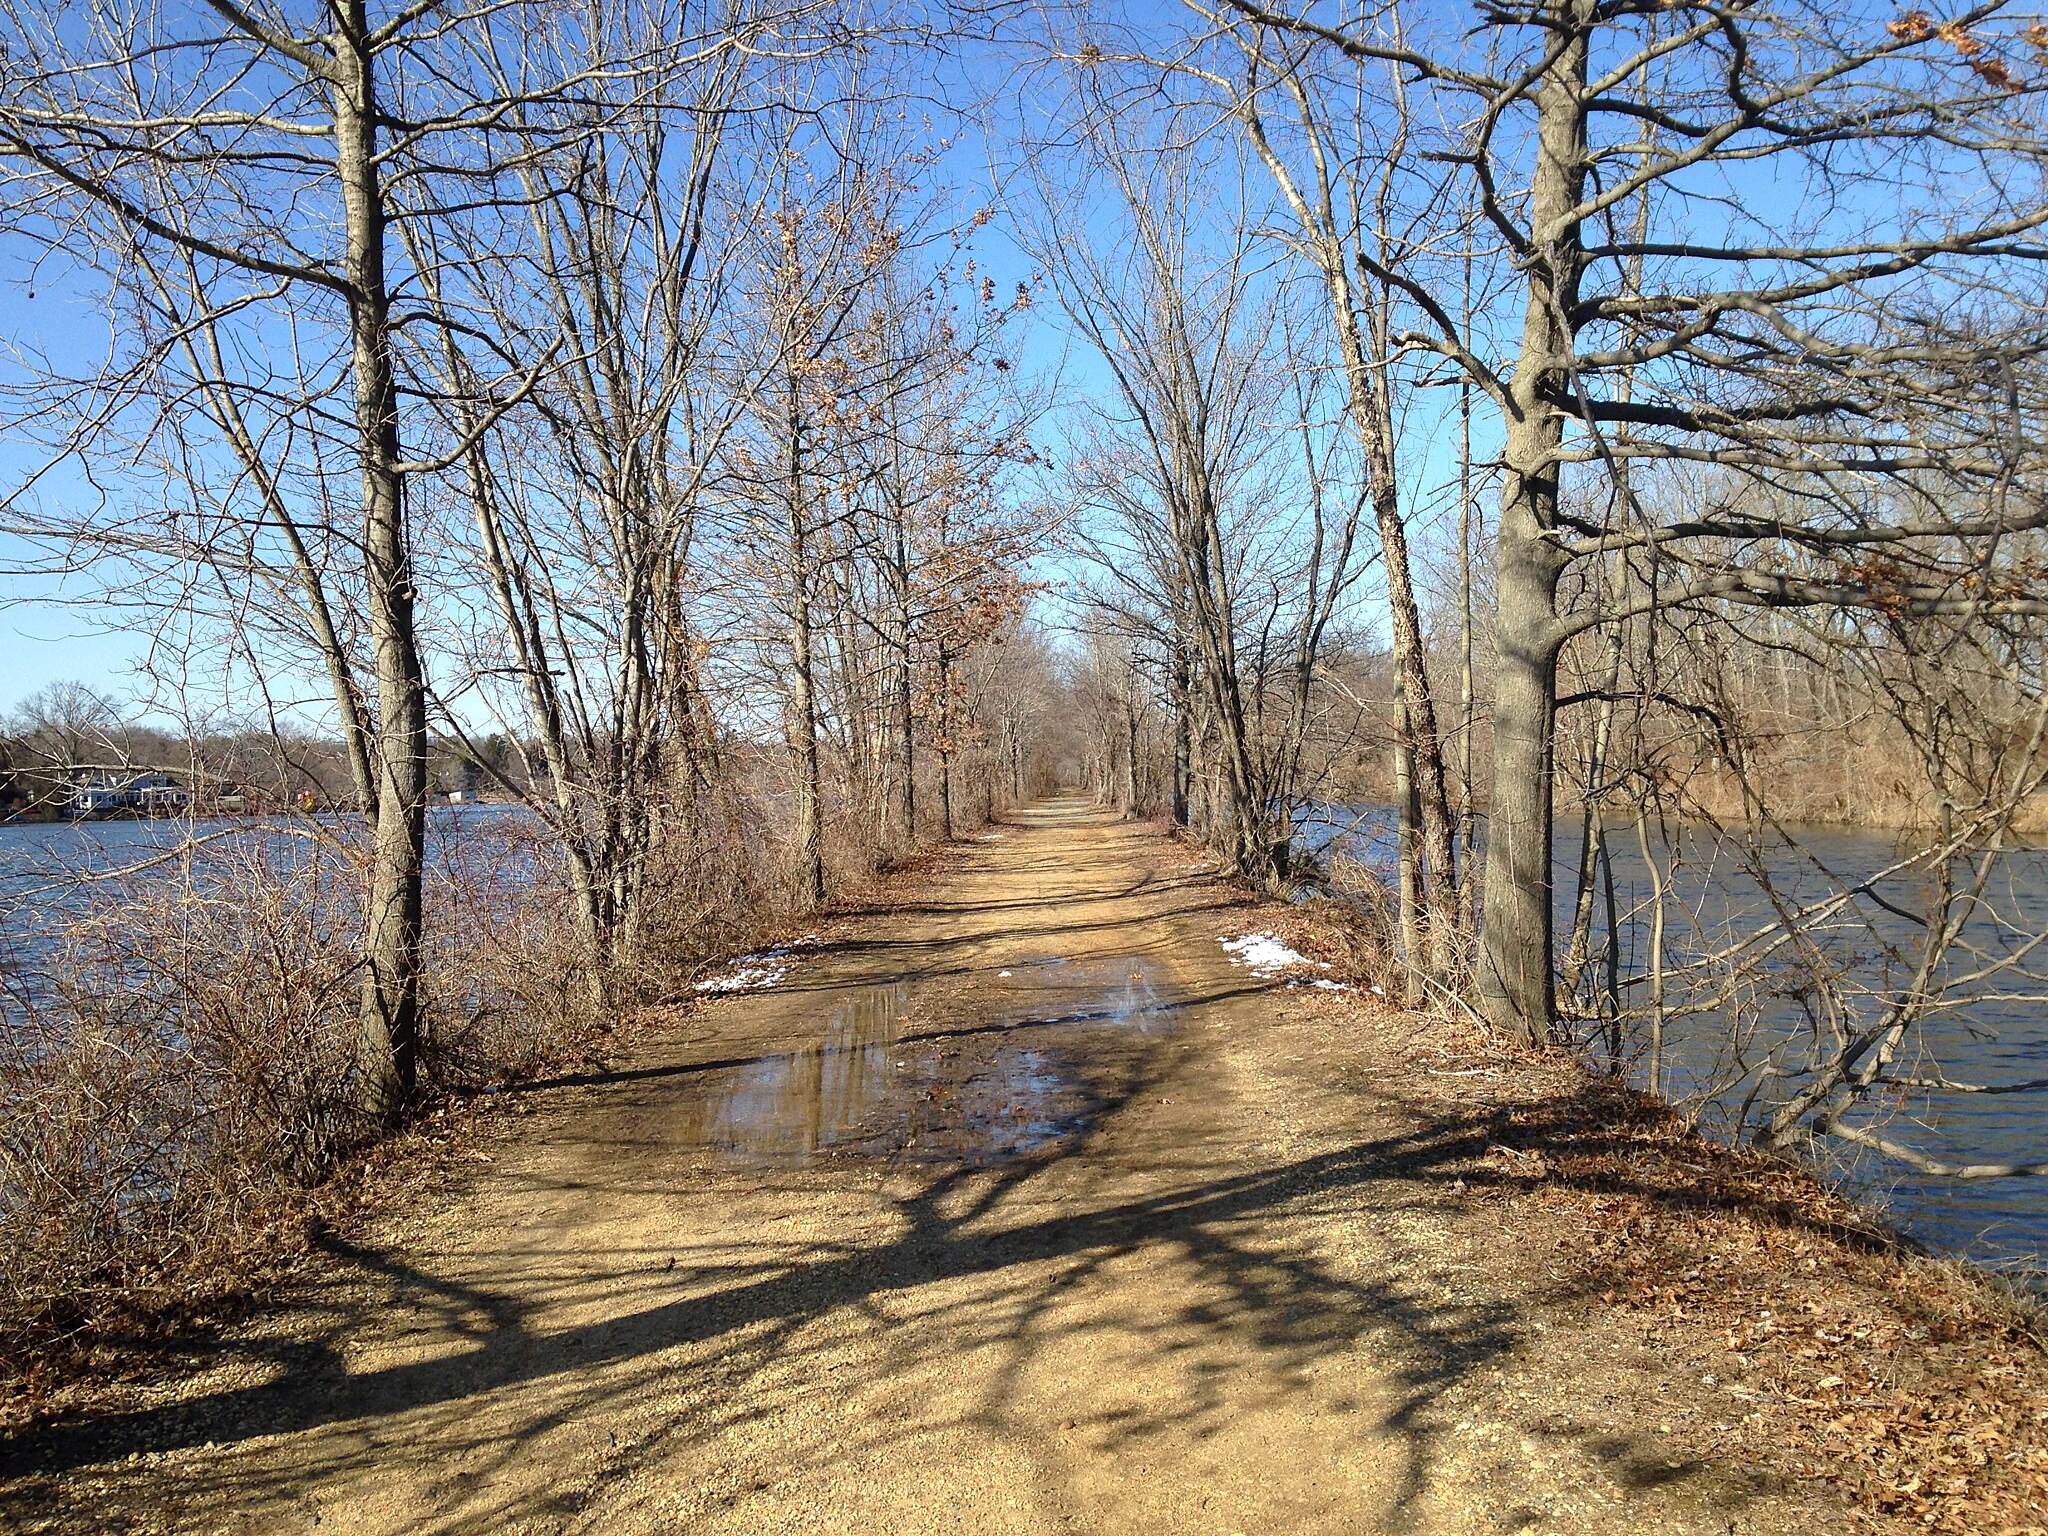 Delaware and Raritan Canal State Park Trail spring is coming!